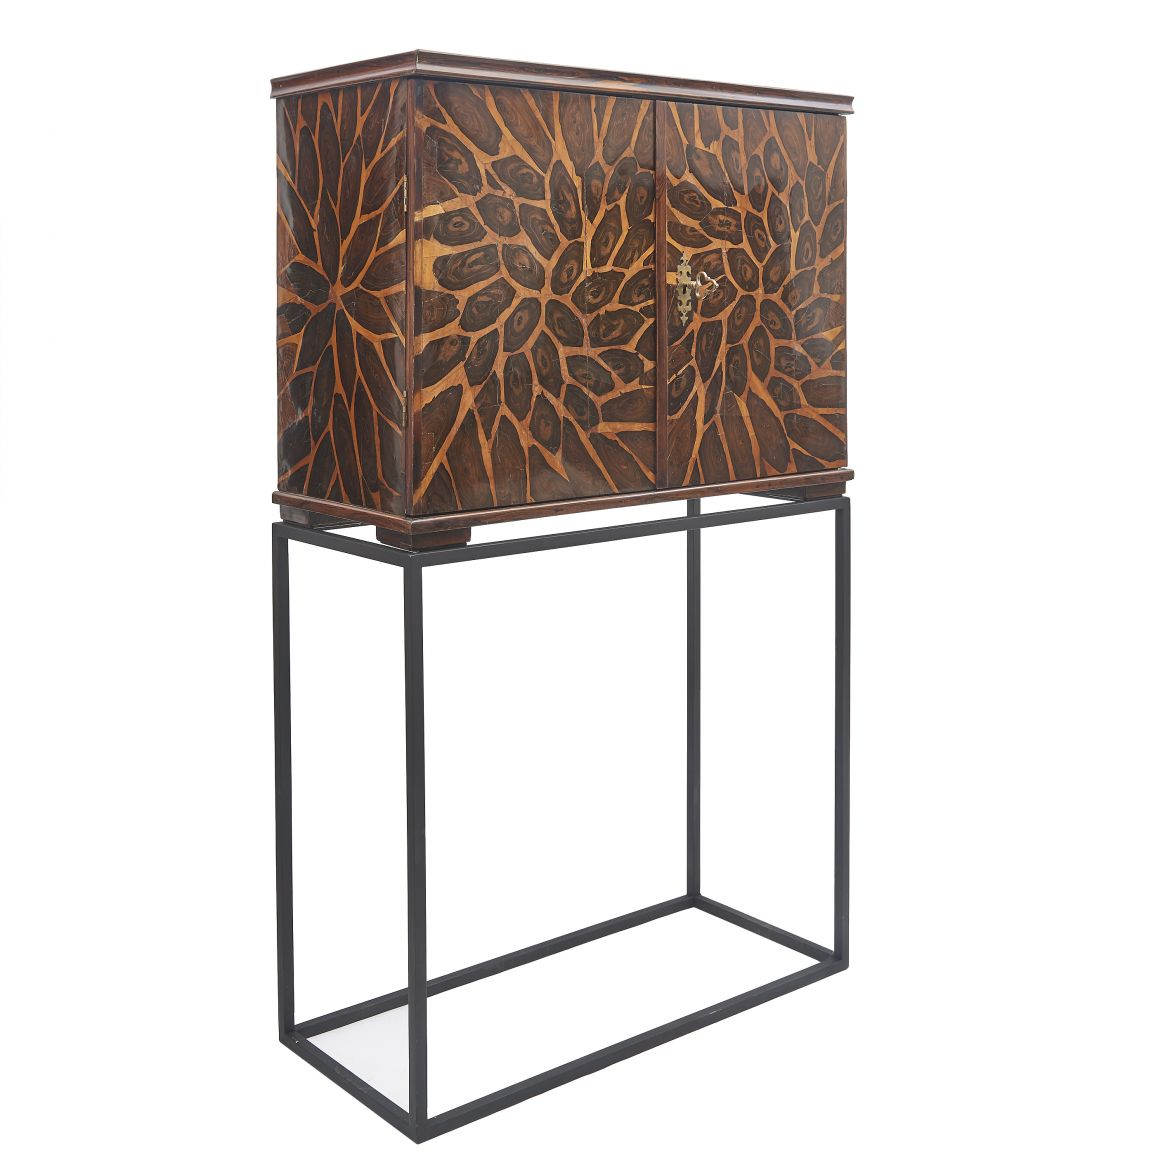 Unusual Oyster Veneer Cabinet on stand